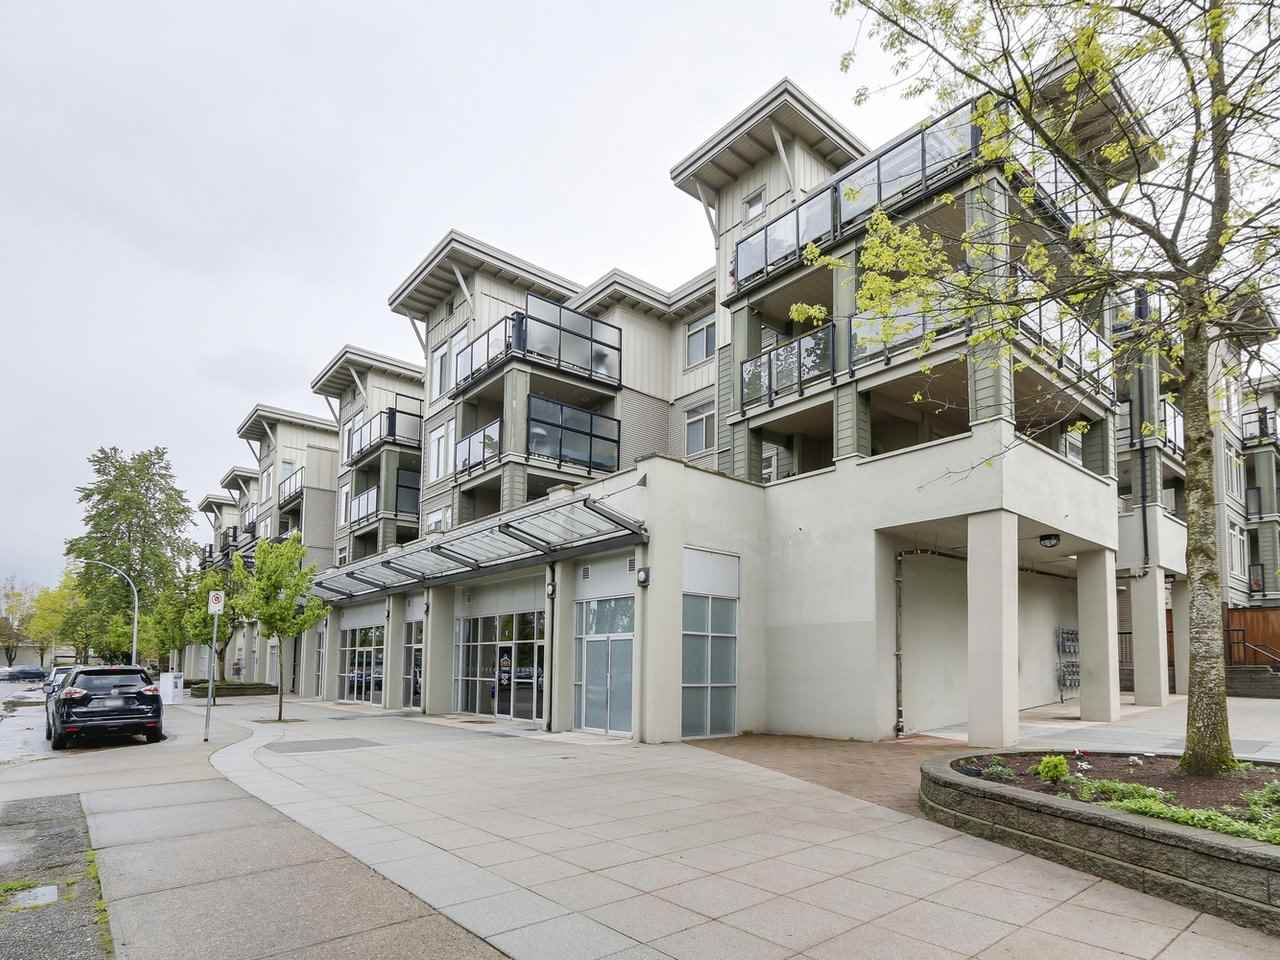 Condo Apartment at 203 10180 153 STREET, Unit 203, North Surrey, British Columbia. Image 1